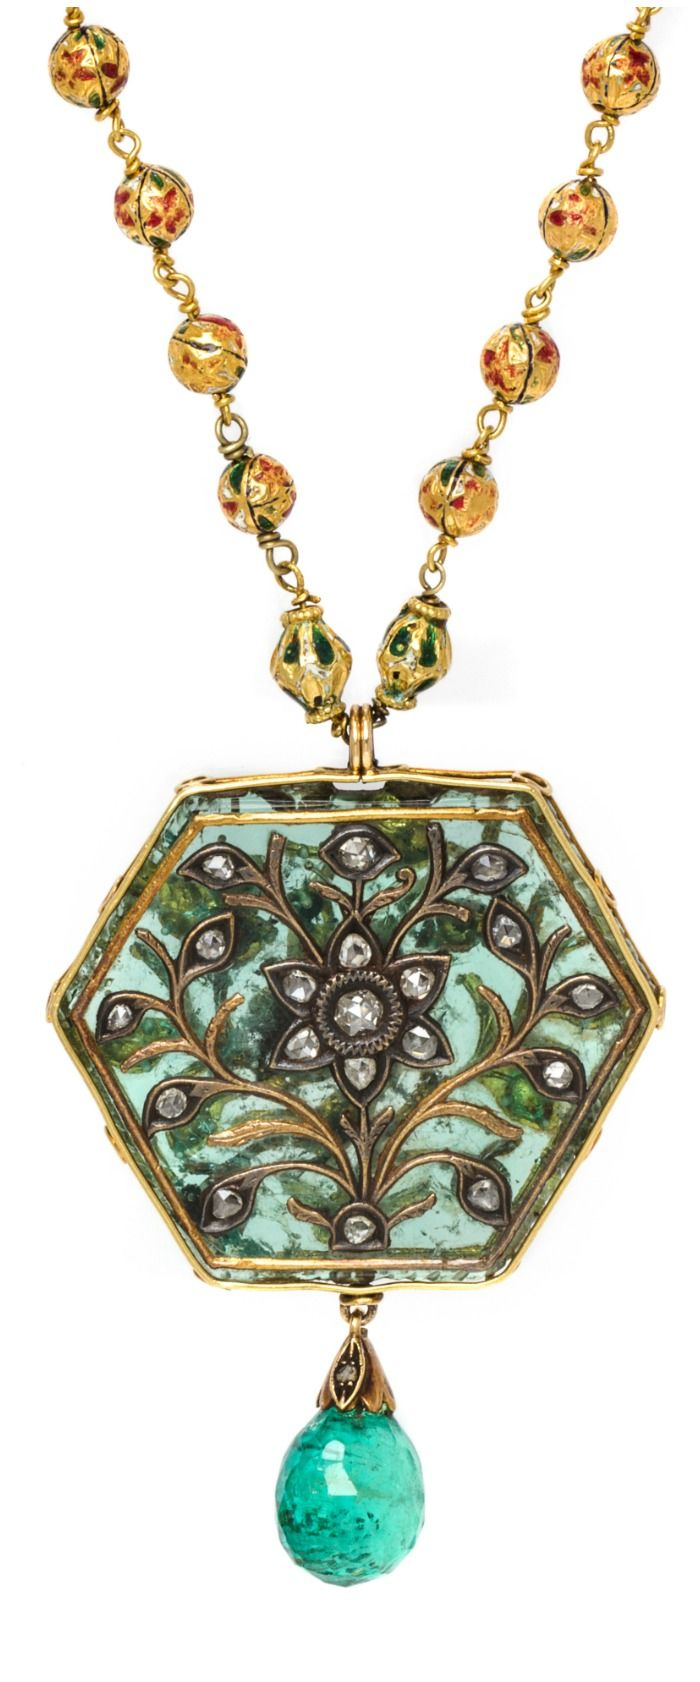 Detail; a double-strand Indian necklace with gold beads, emeralds, rubies, and an incredible natural hexagonal emerald with ruby, diamond, and gold details.